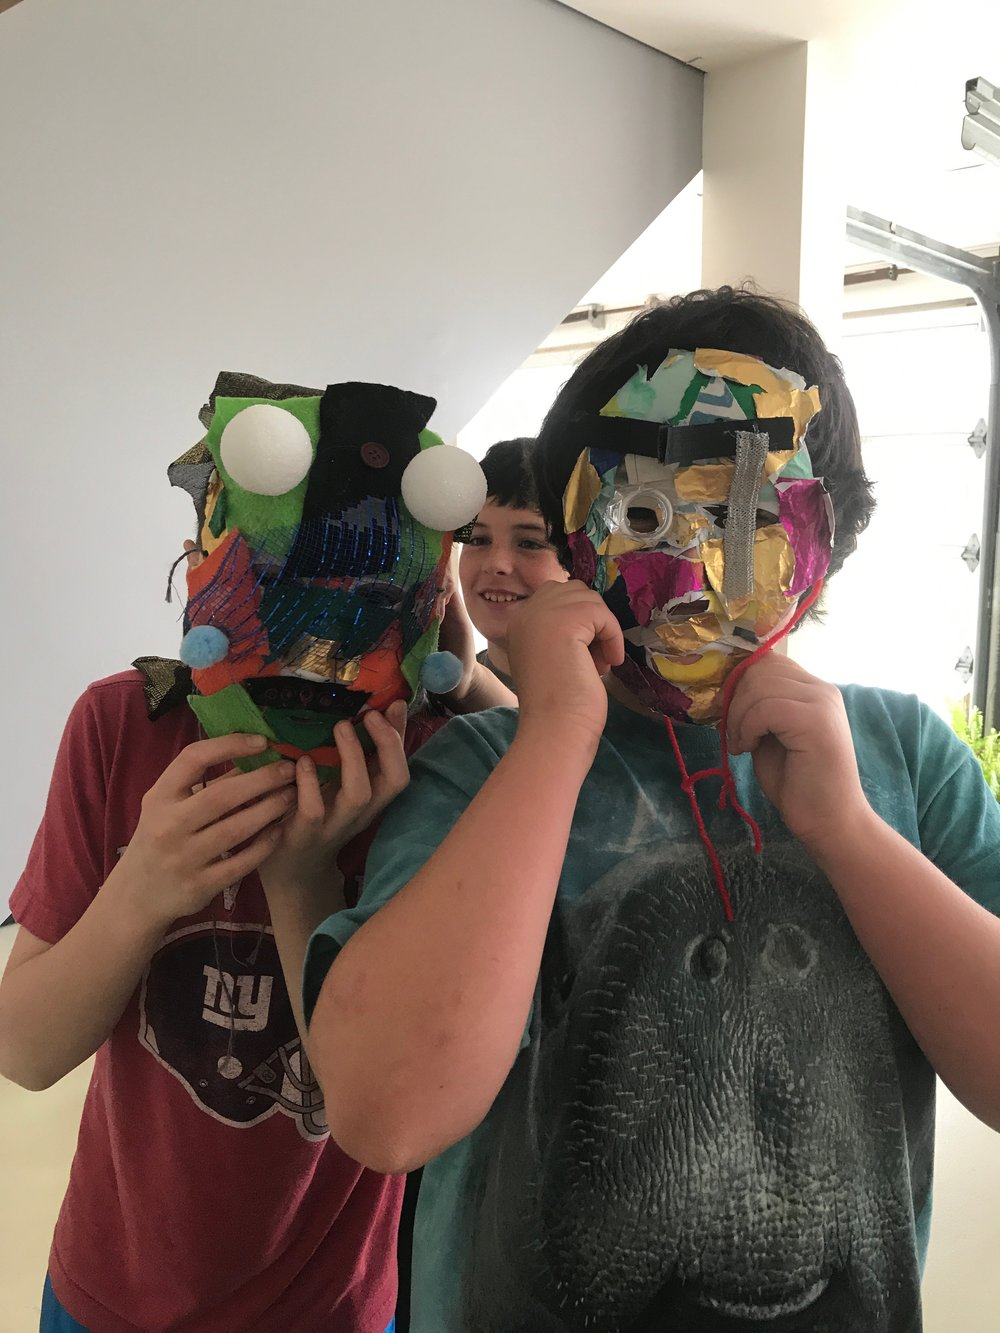 Masks are starting to come together...